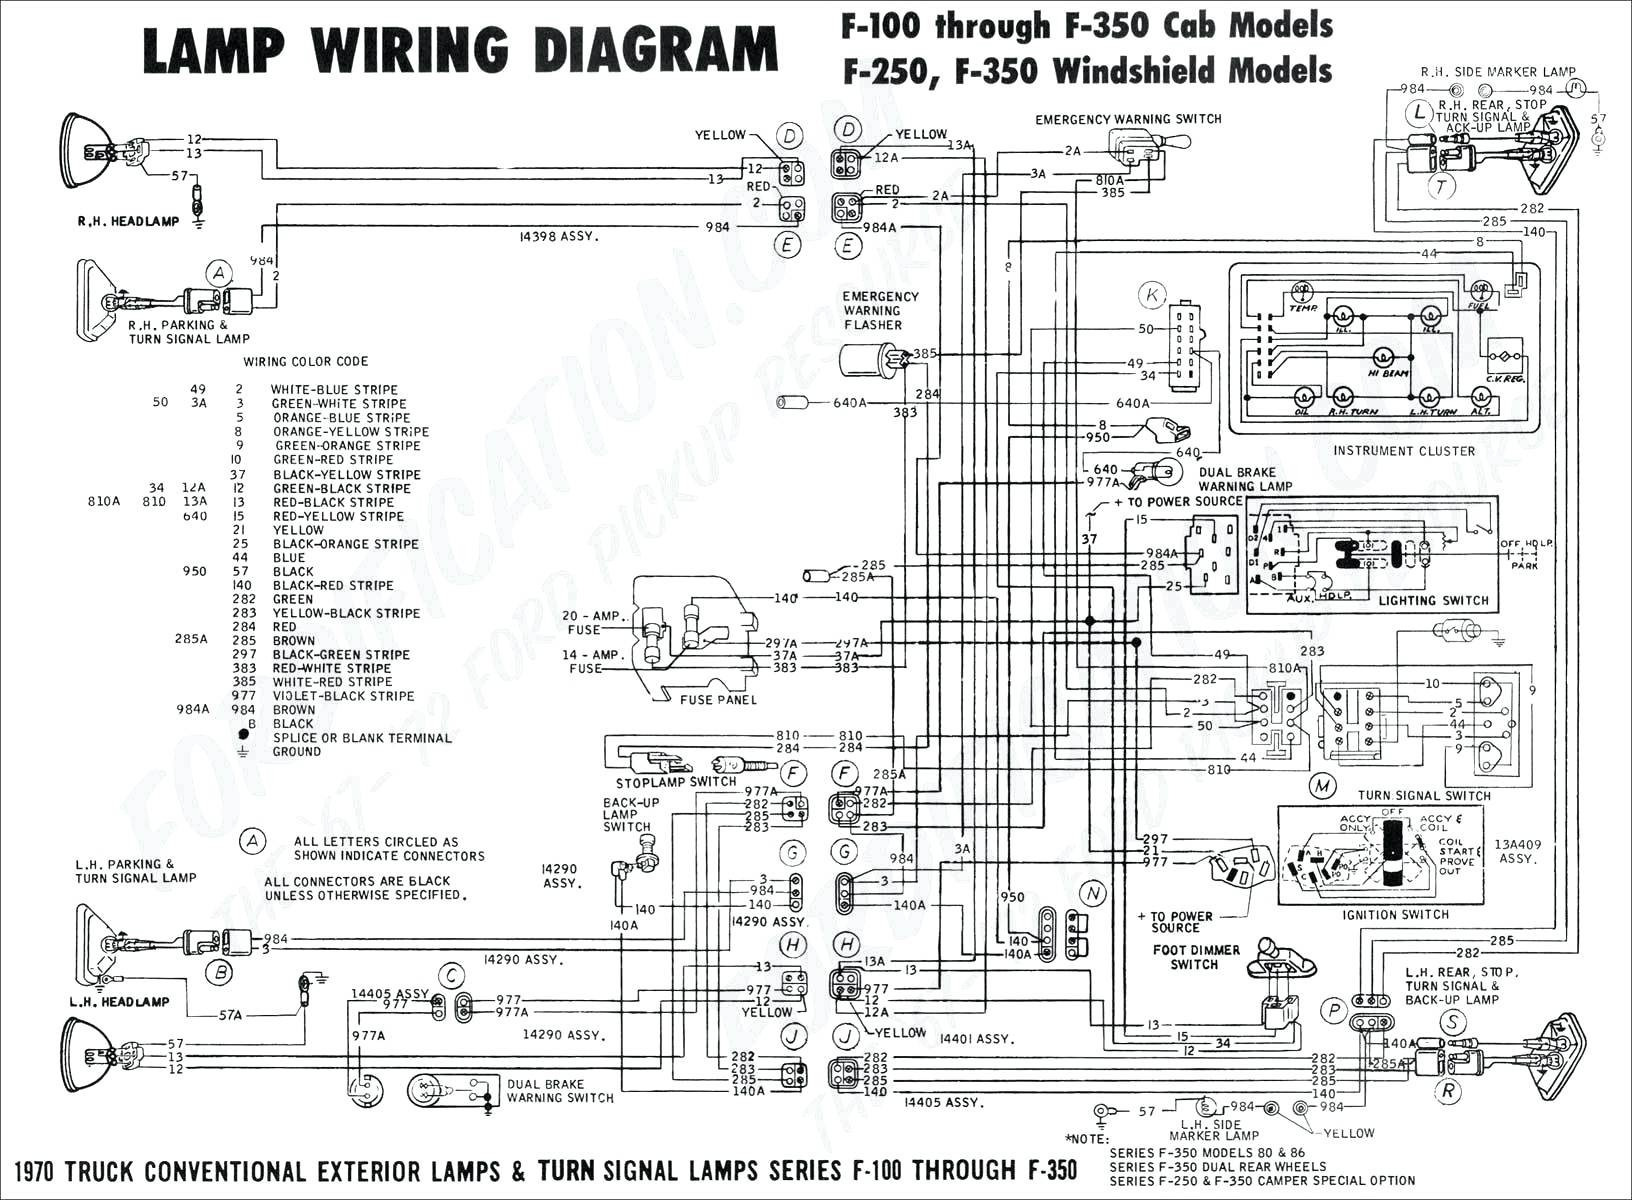 2002 Pontiac Grand Am Engine Diagram 2003 Pontiac Grand Am